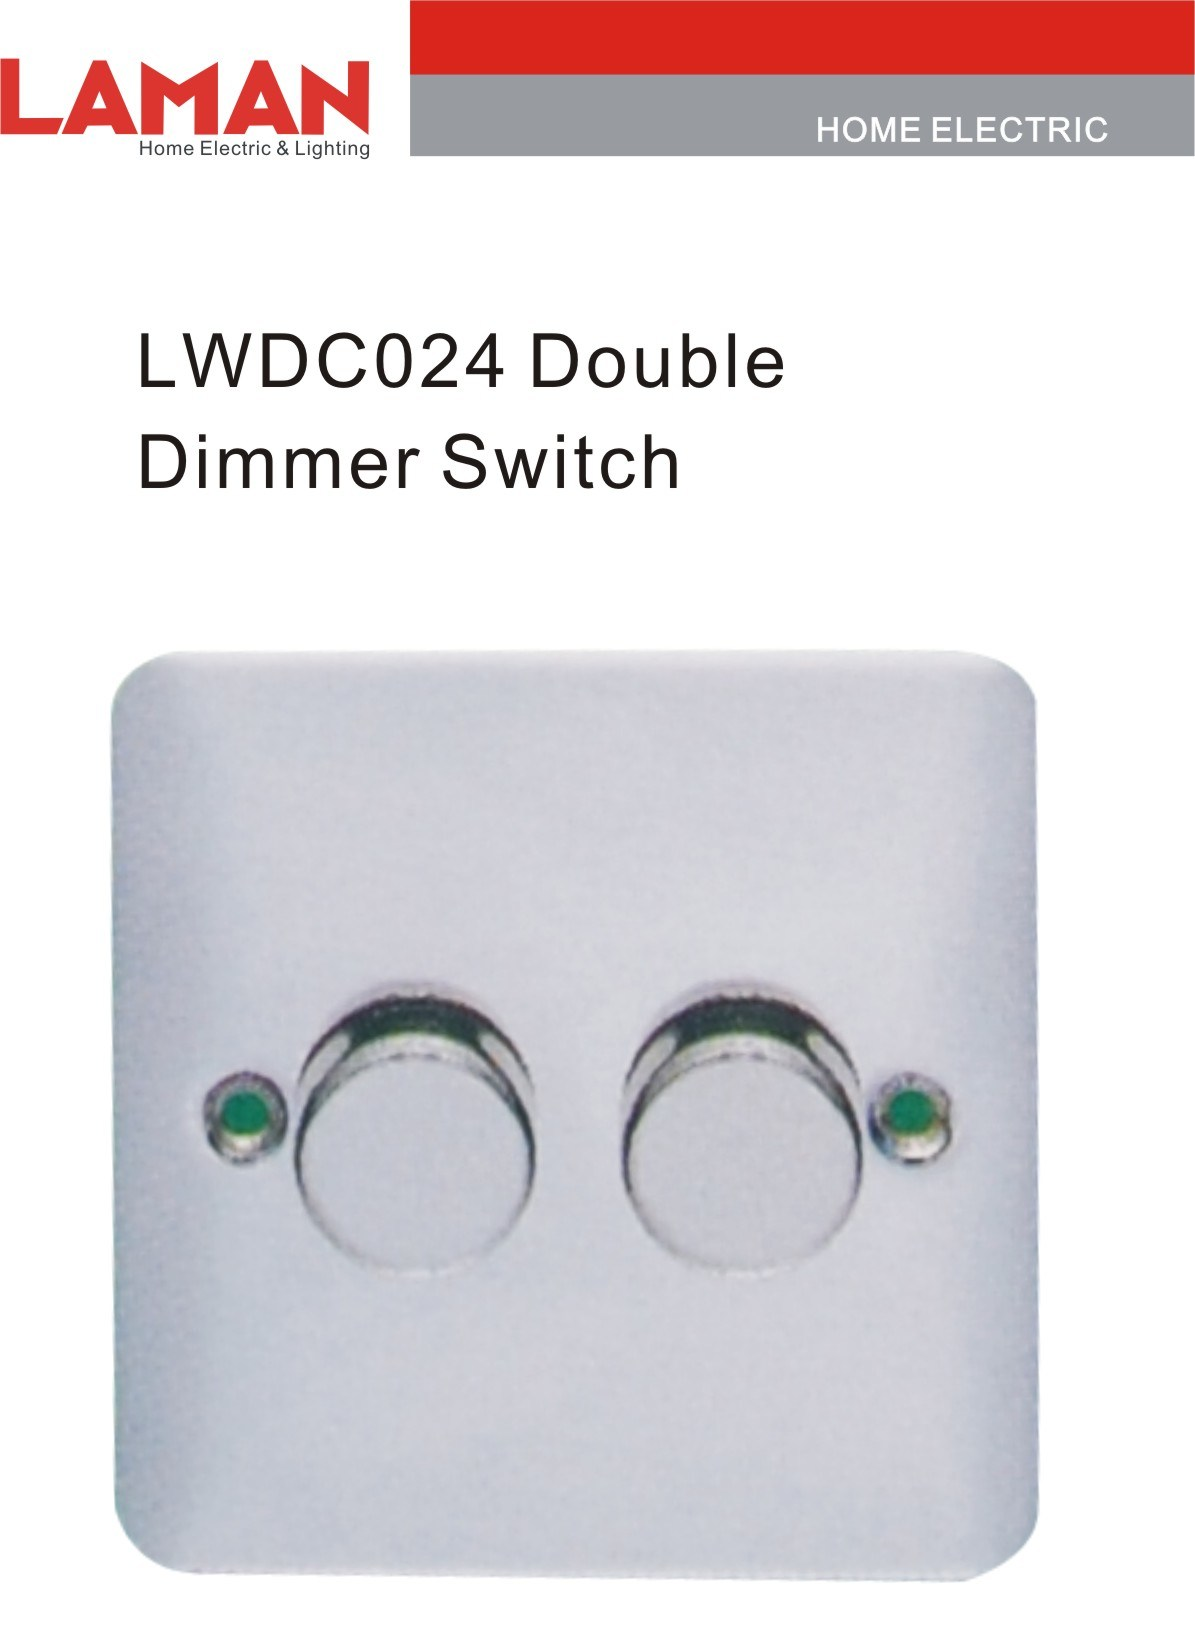 china double dimmer switch lwdc024 china wall switch switch. Black Bedroom Furniture Sets. Home Design Ideas